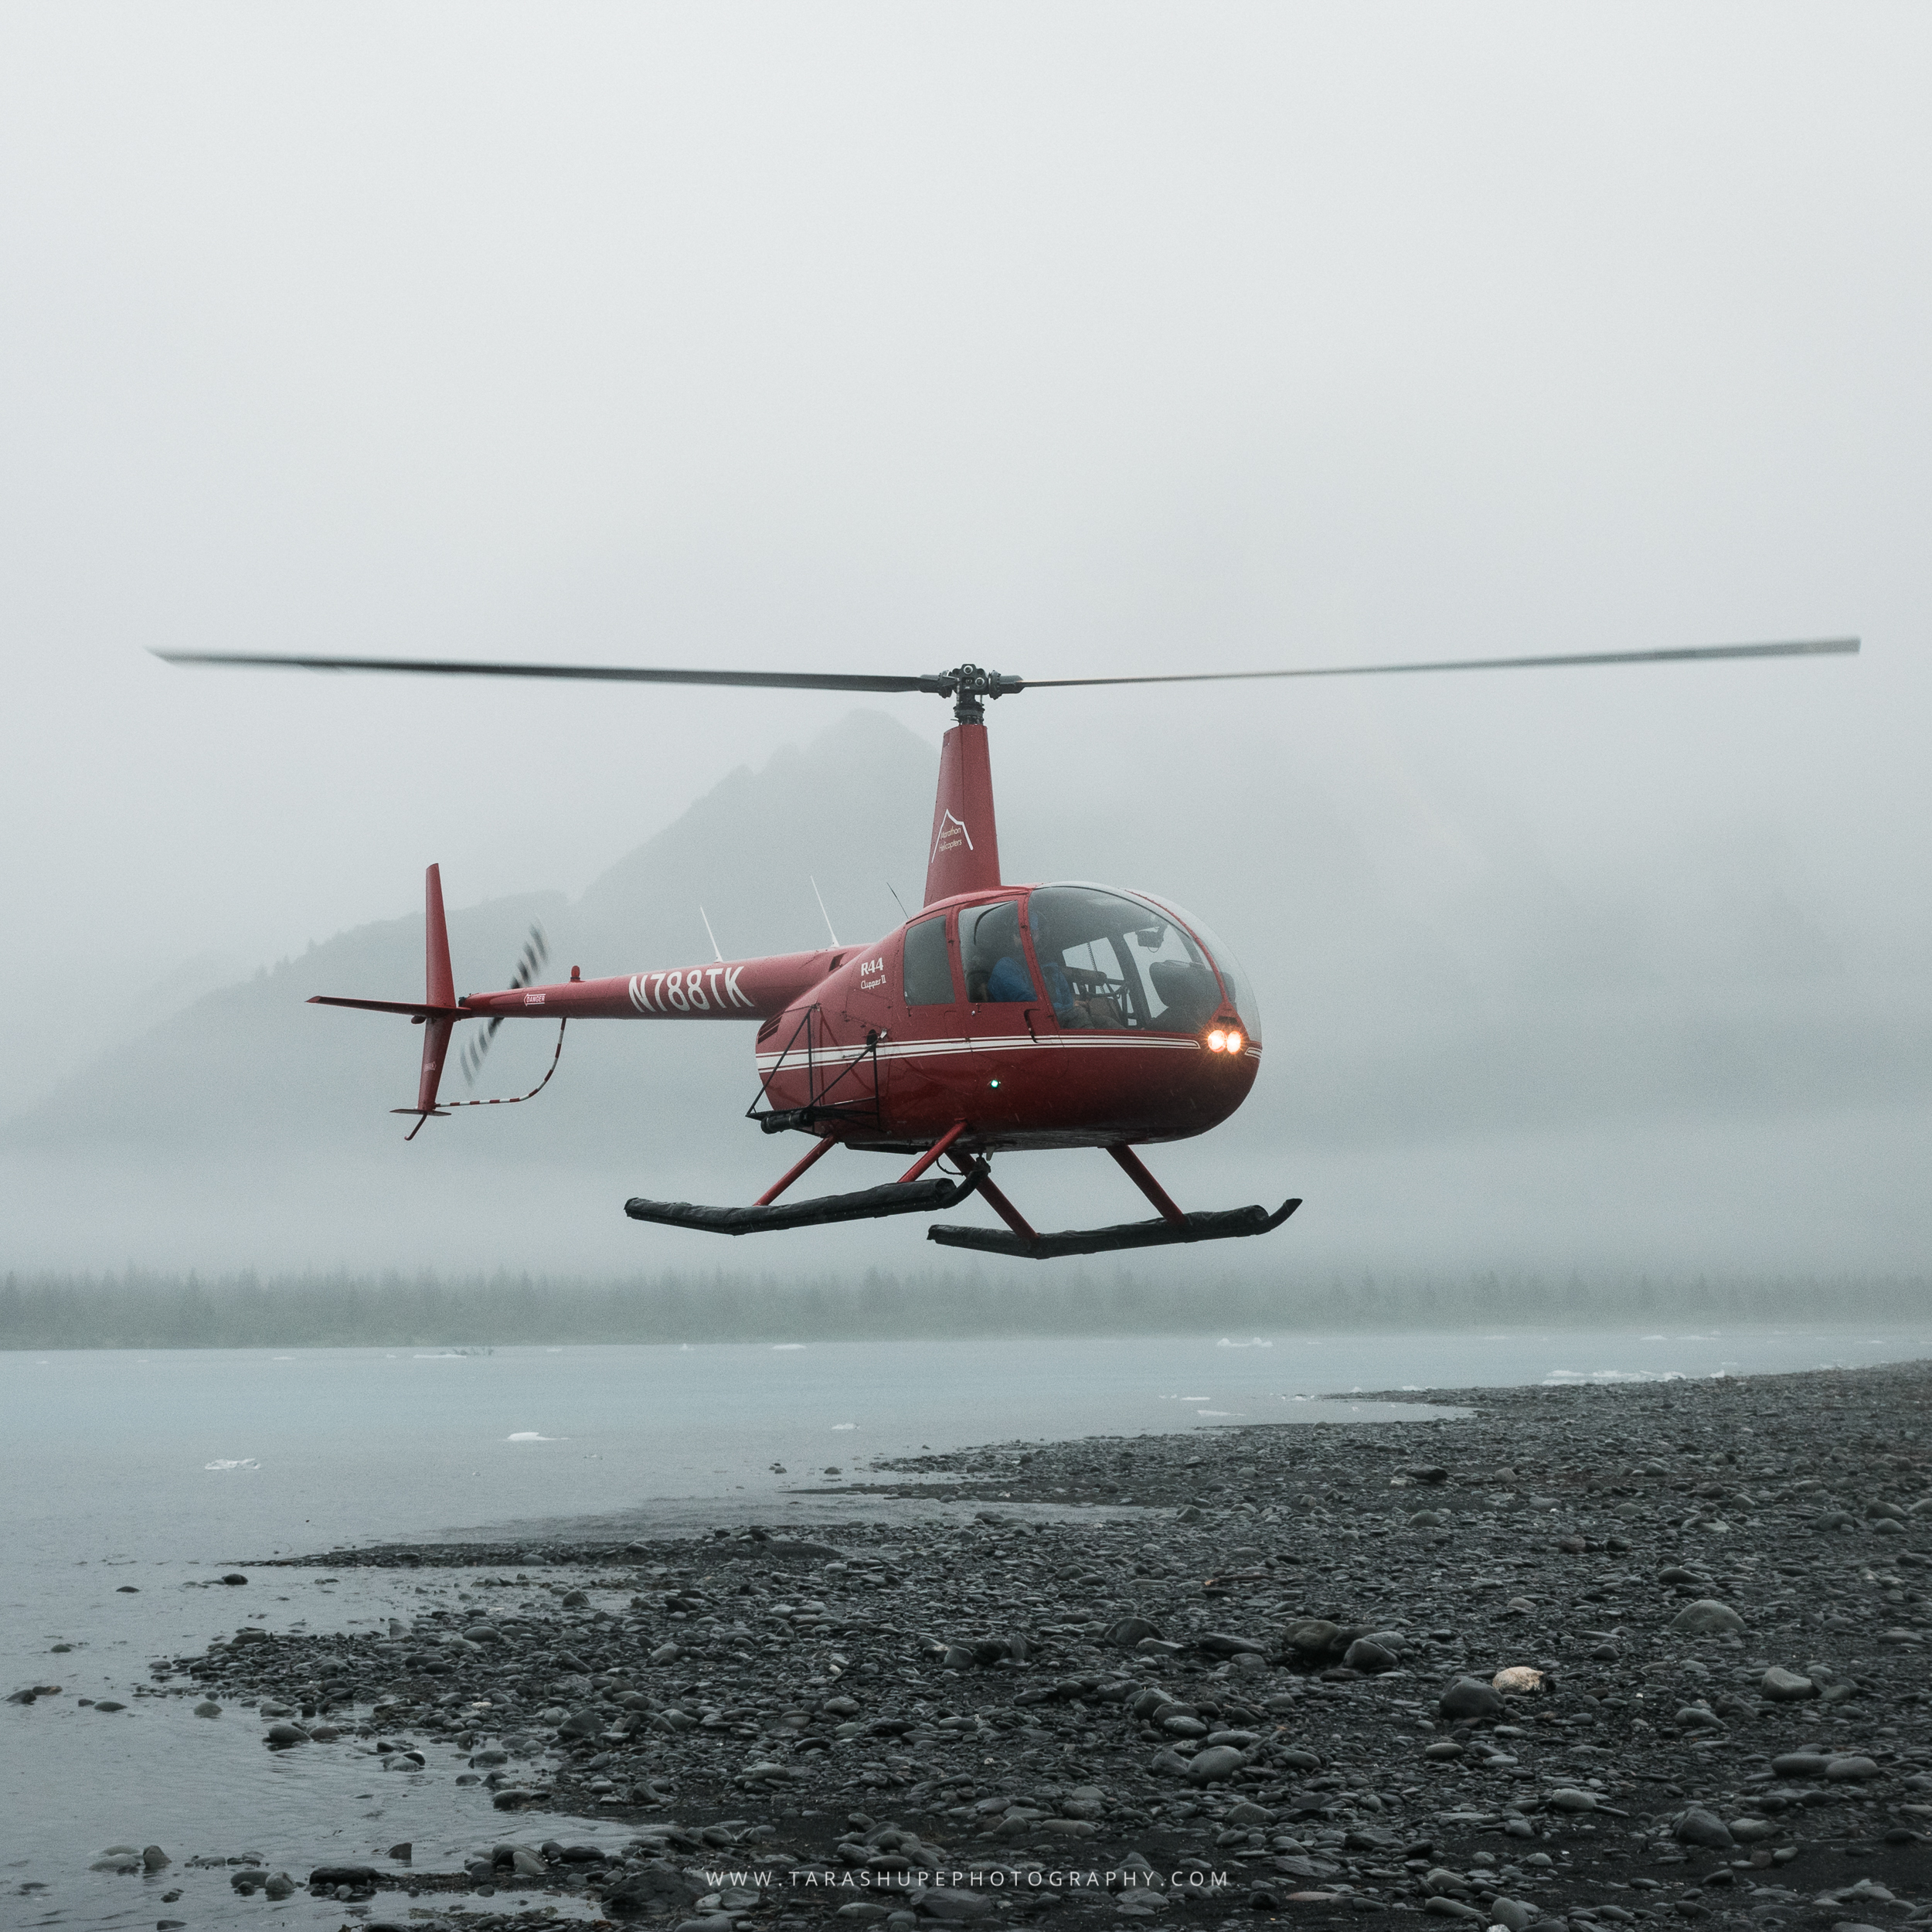 ALASKA_TaraShupe_Outdoor_Adventure_DSC_4727.jpg